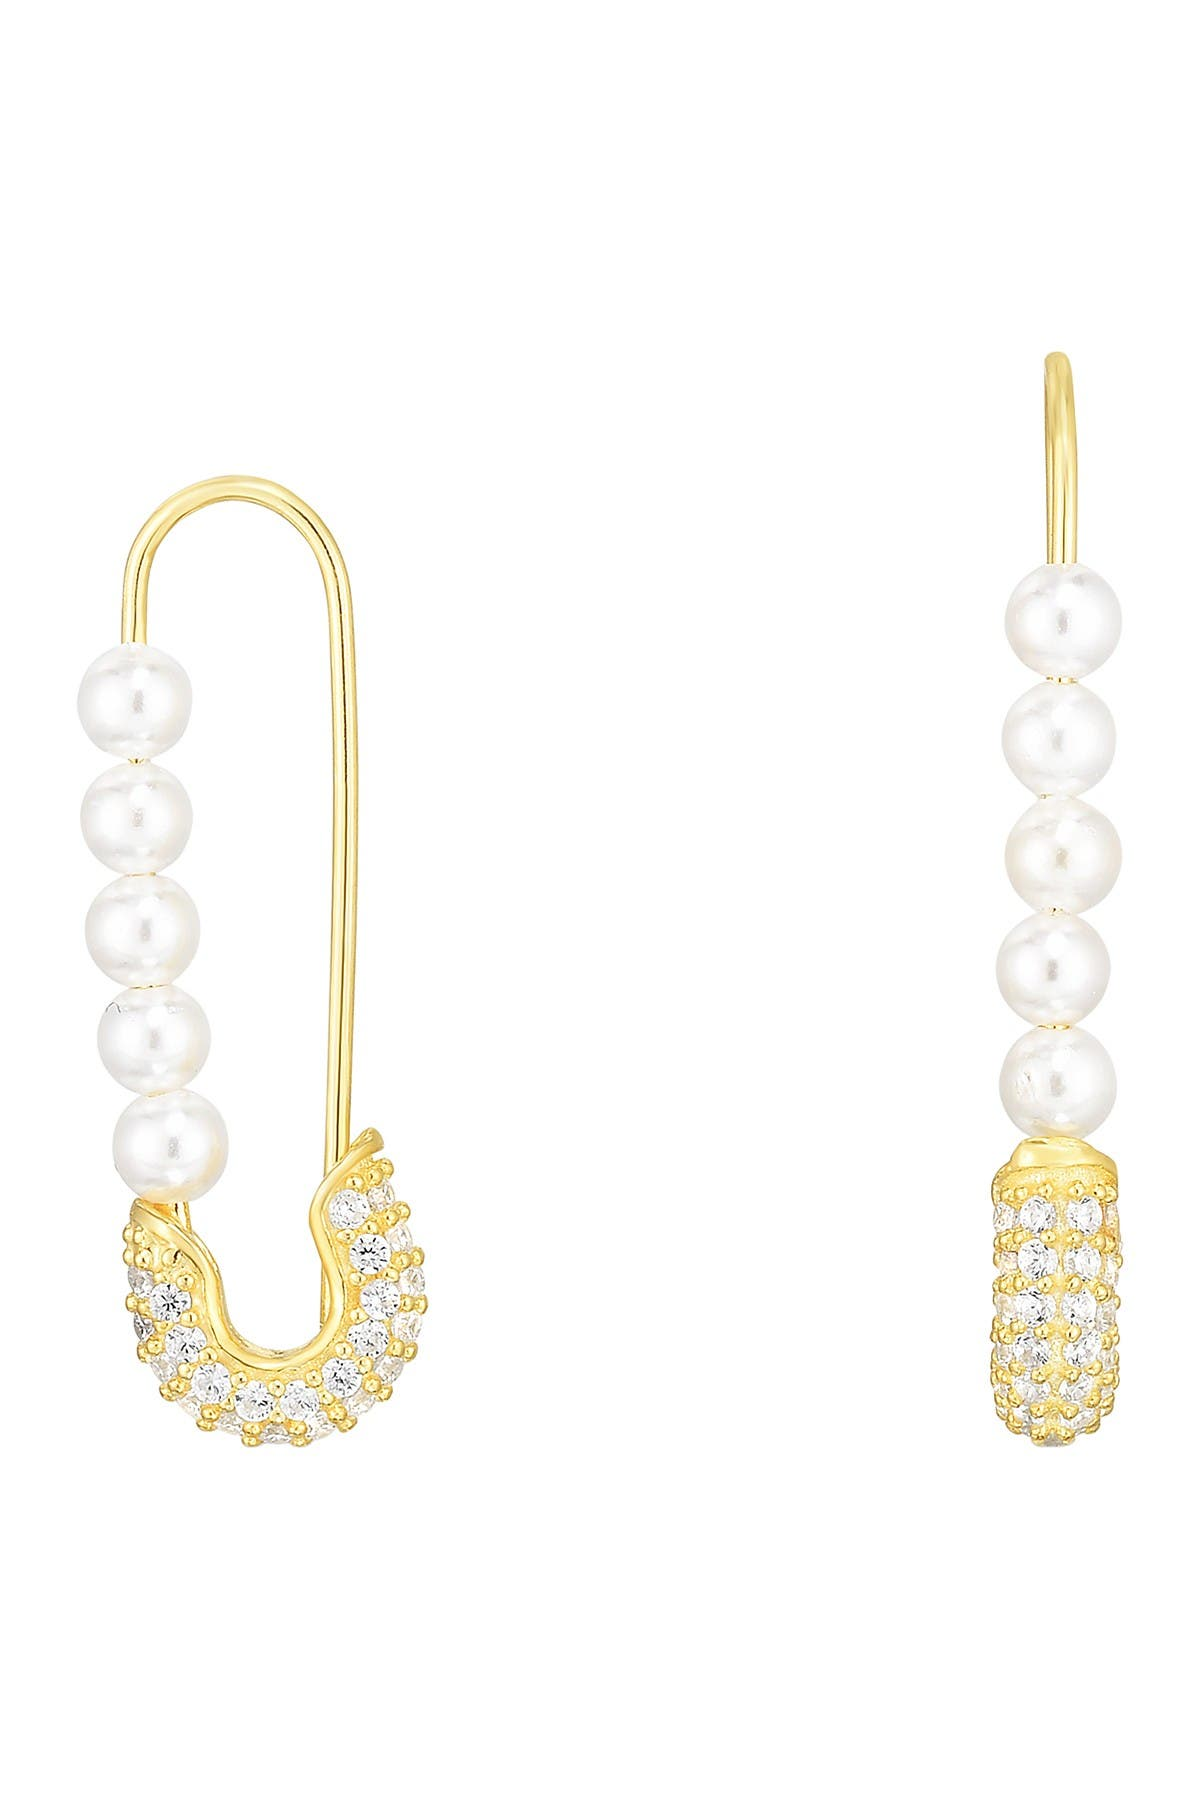 Sphera Milano 14K Yellow Gold Plated Sterling Silver Pave CZ Freshwater Pearl Safety Pin Earrings at Nordstrom Rack